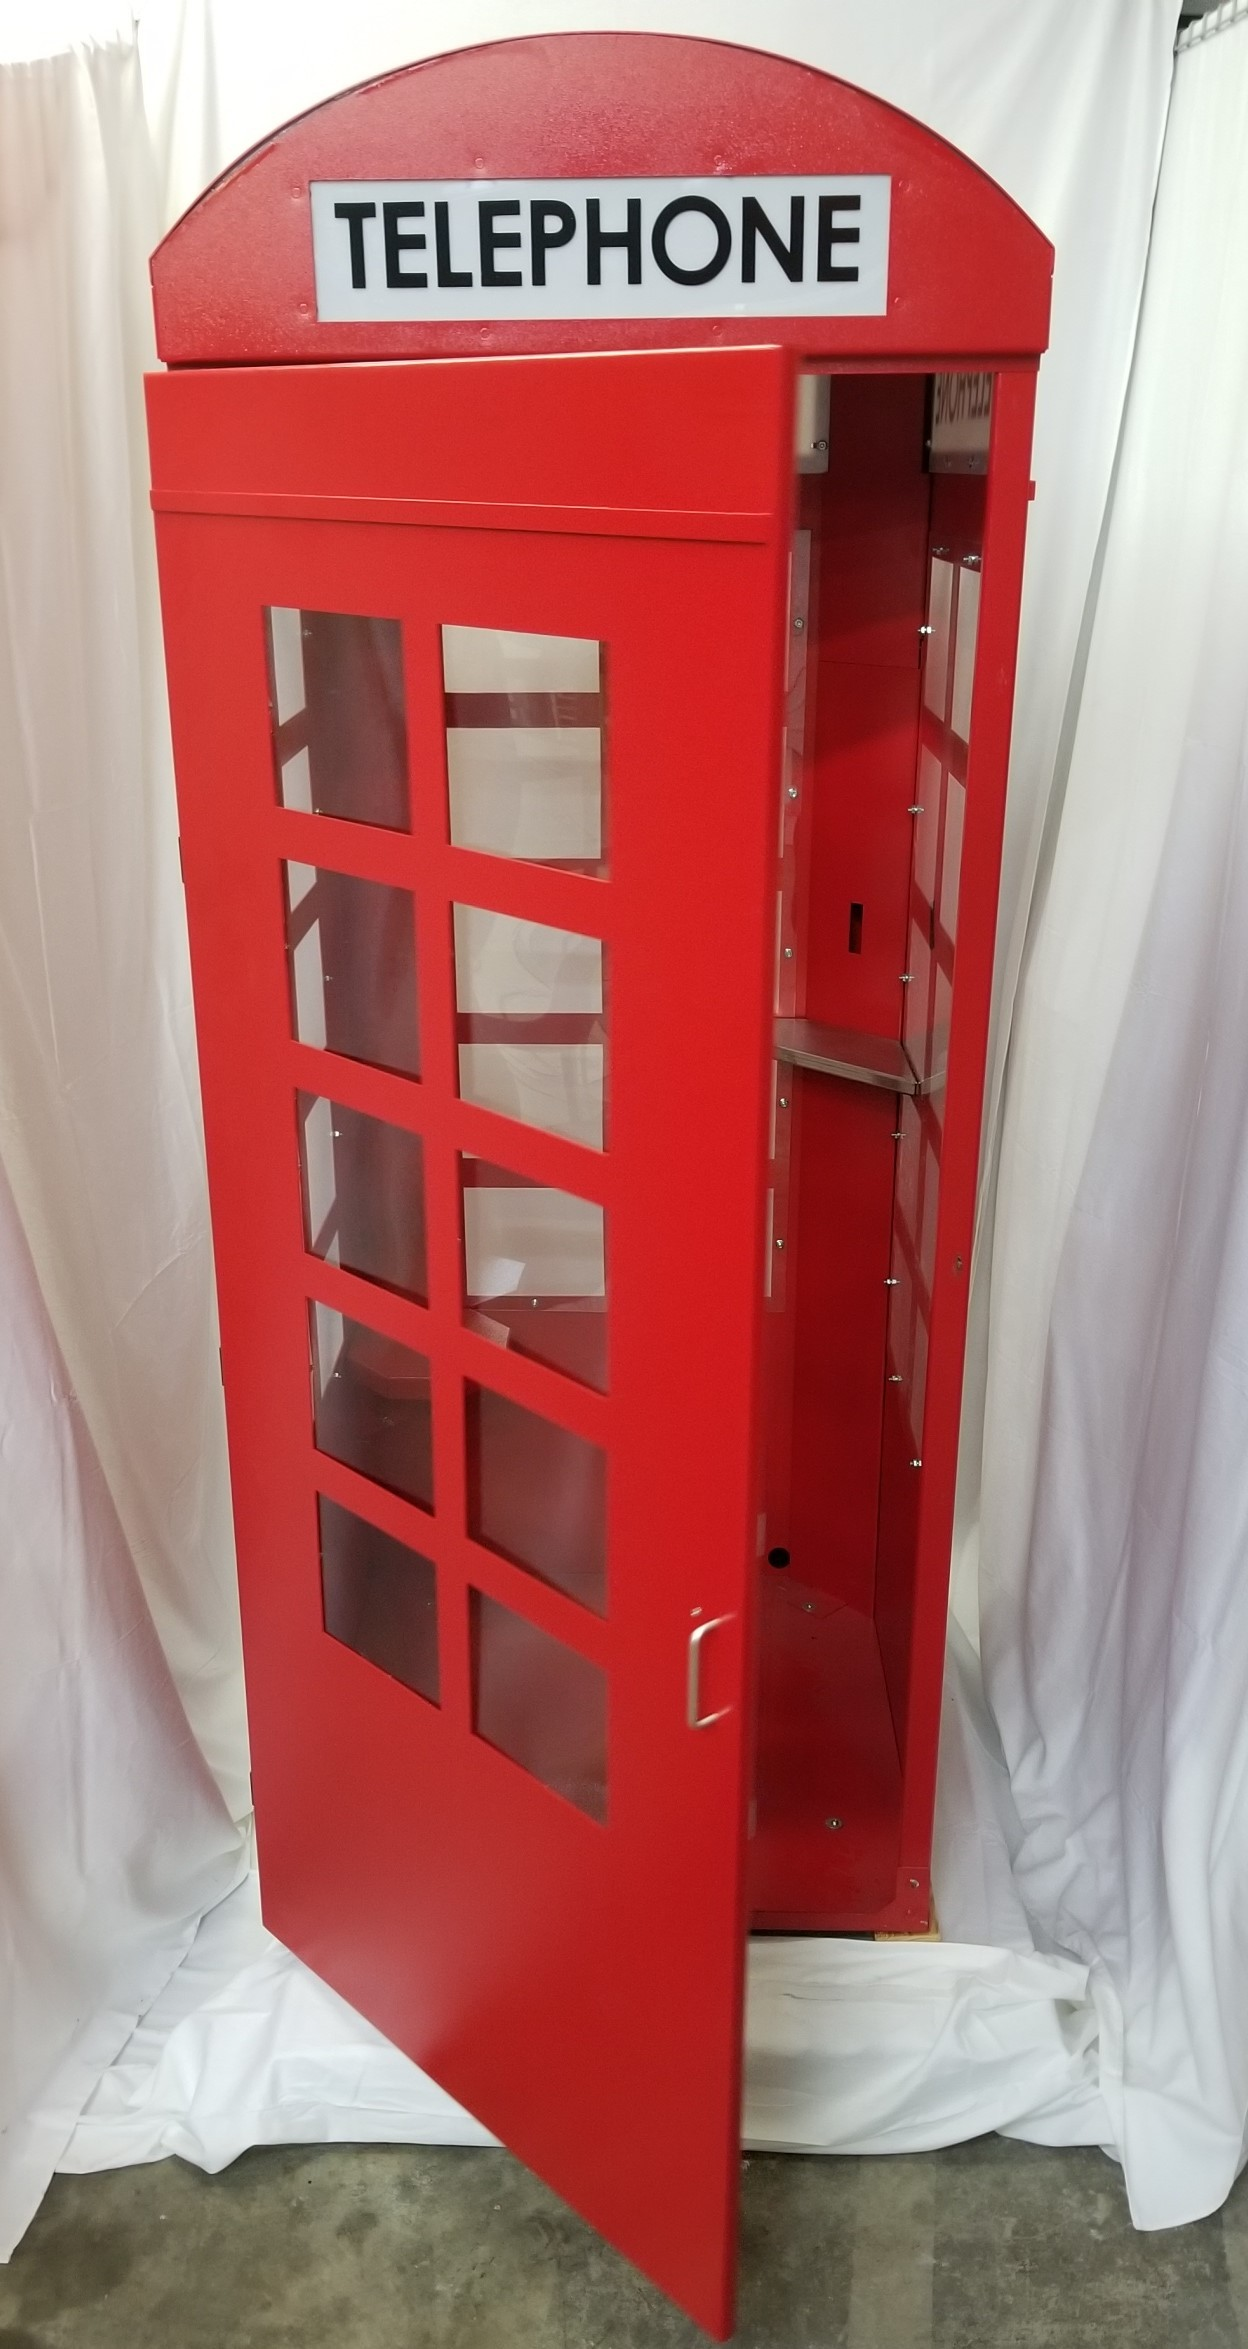 Telephone Privacy Booth